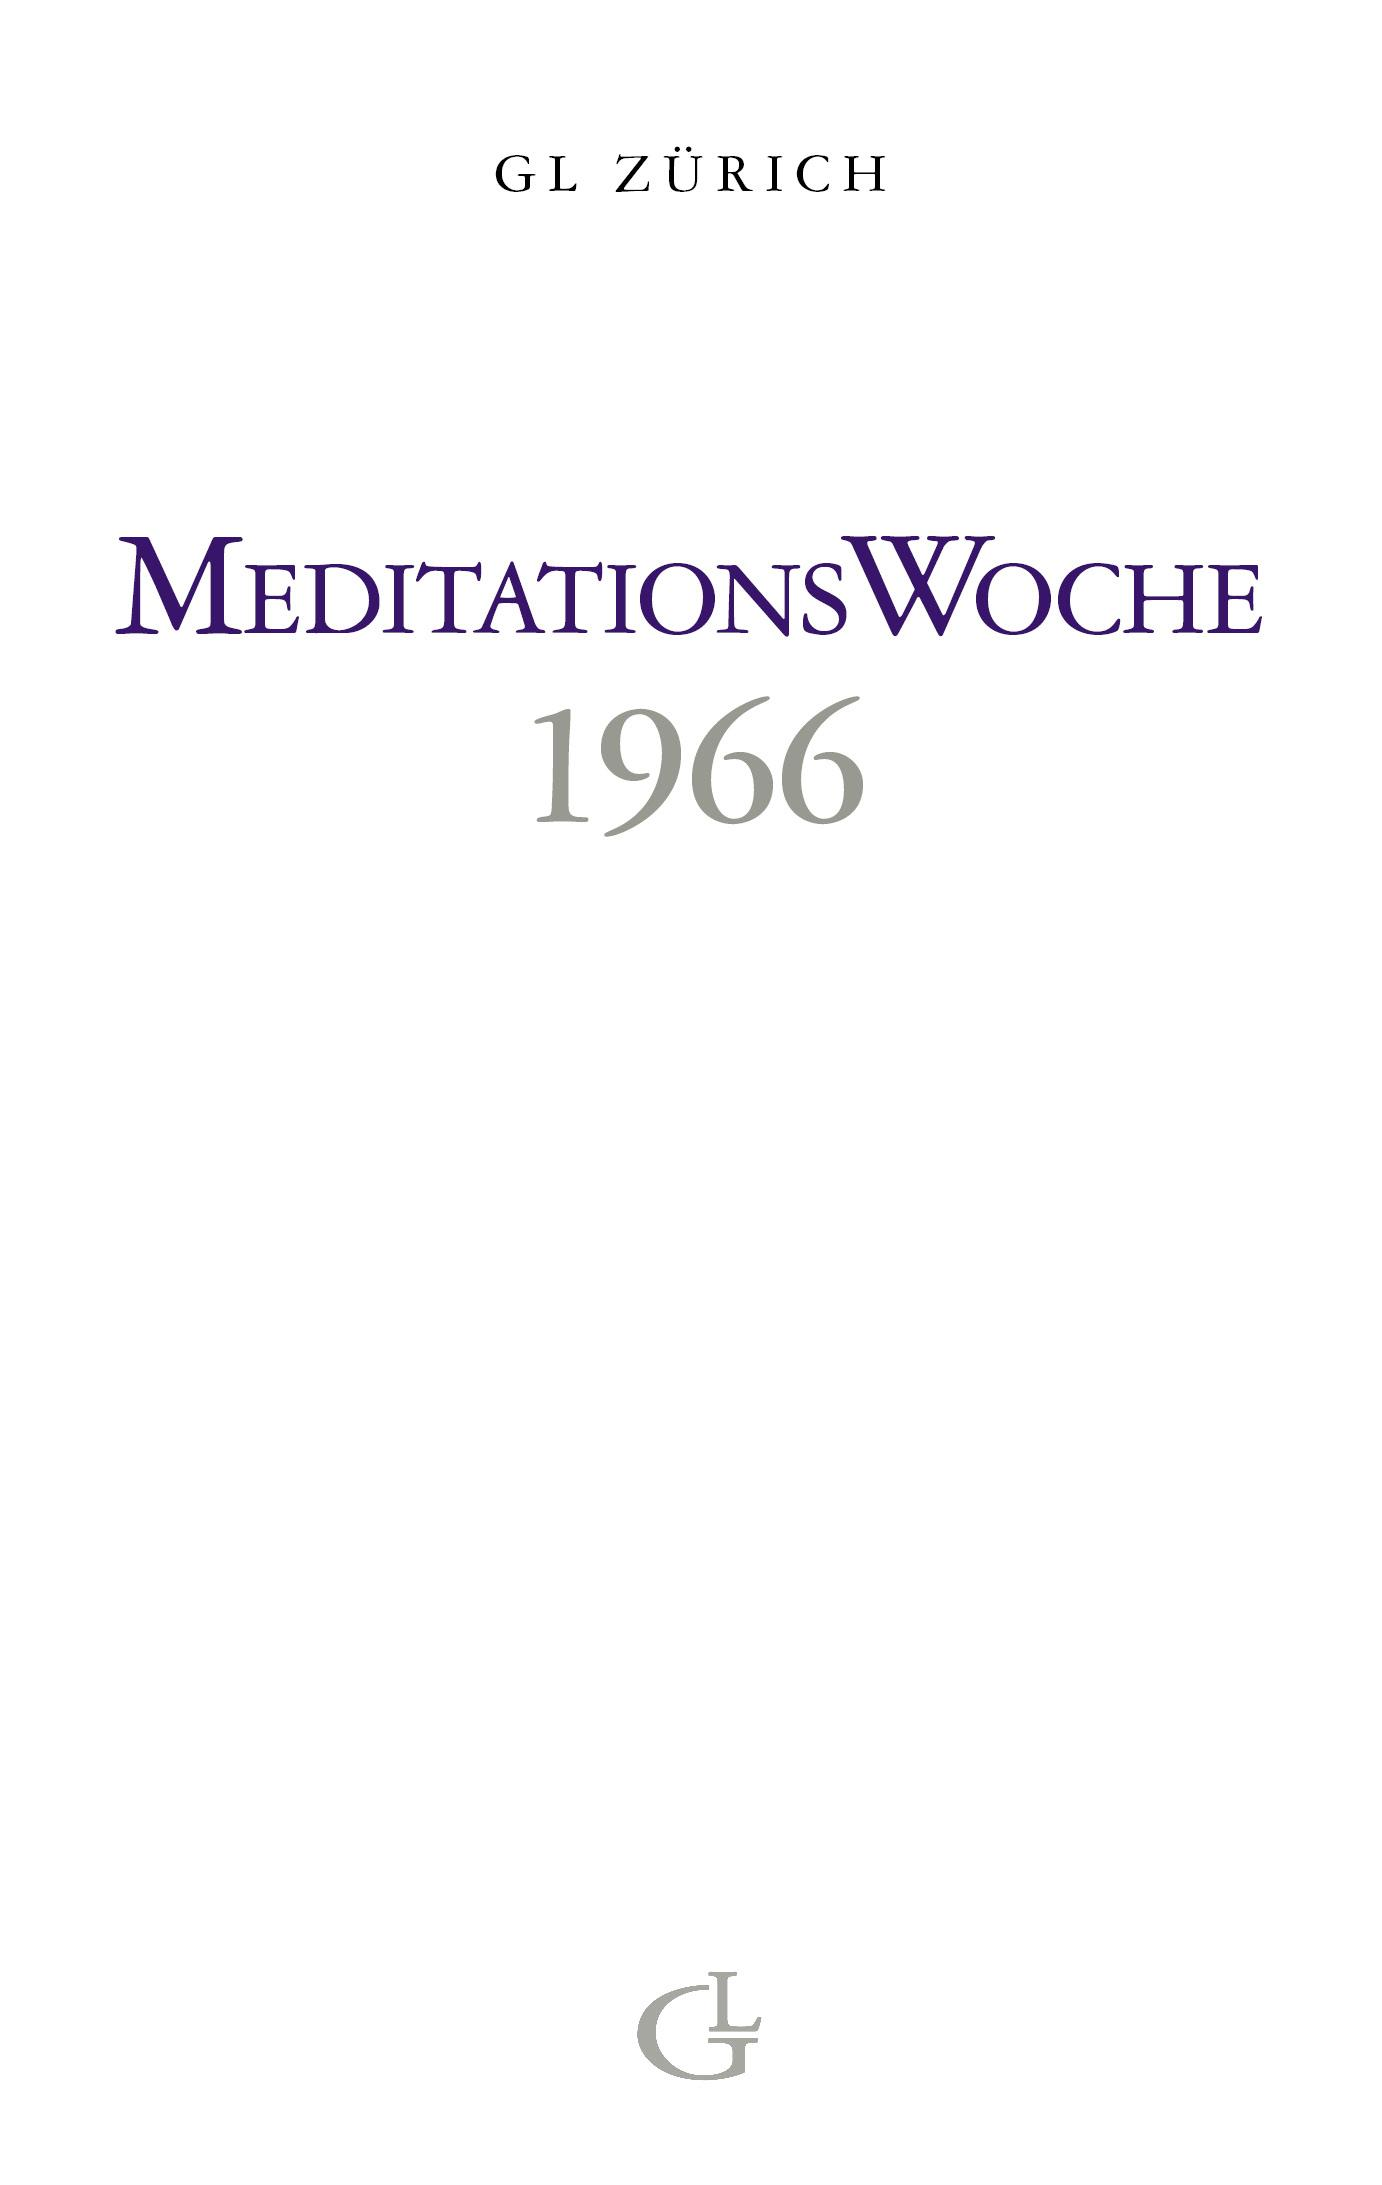 Cover des Buches Meditationswoche 1966 von Medium Beatrice Brunner